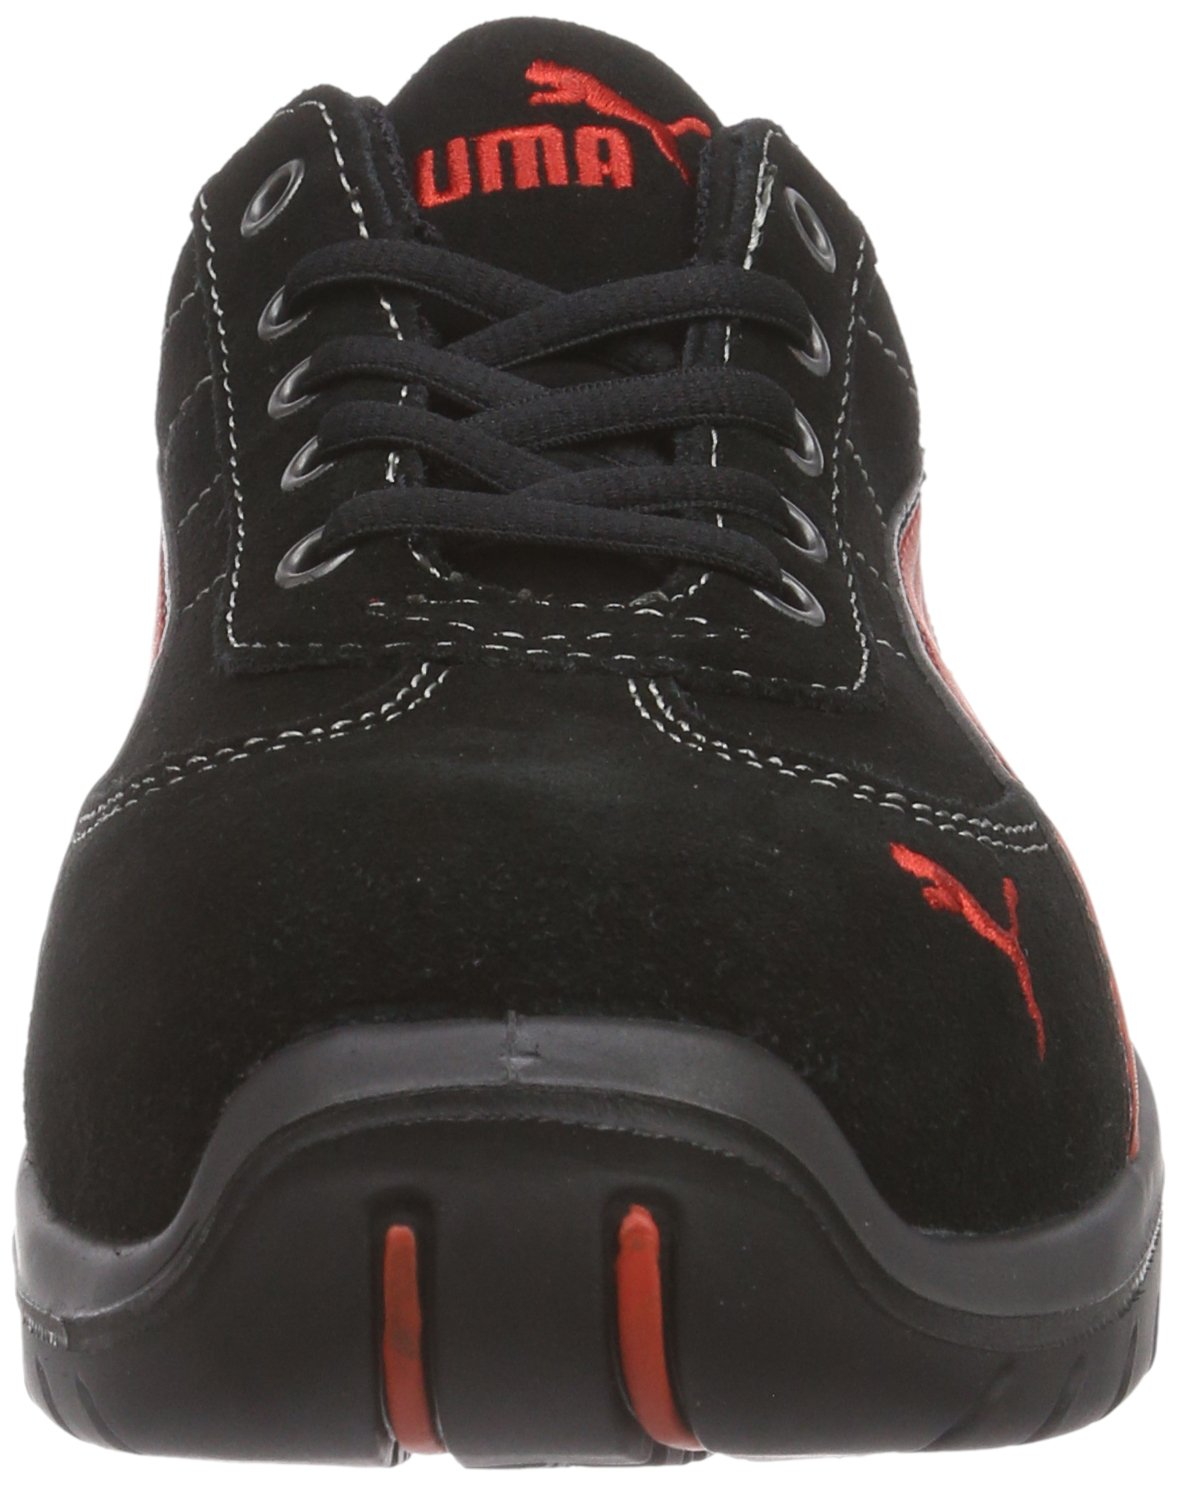 405759d525 Puma 642630.37 Silverstone Chaussures de sécurité Low S1P HRO SRC Taille  37: Amazon.fr: Commerce, Industrie & Science